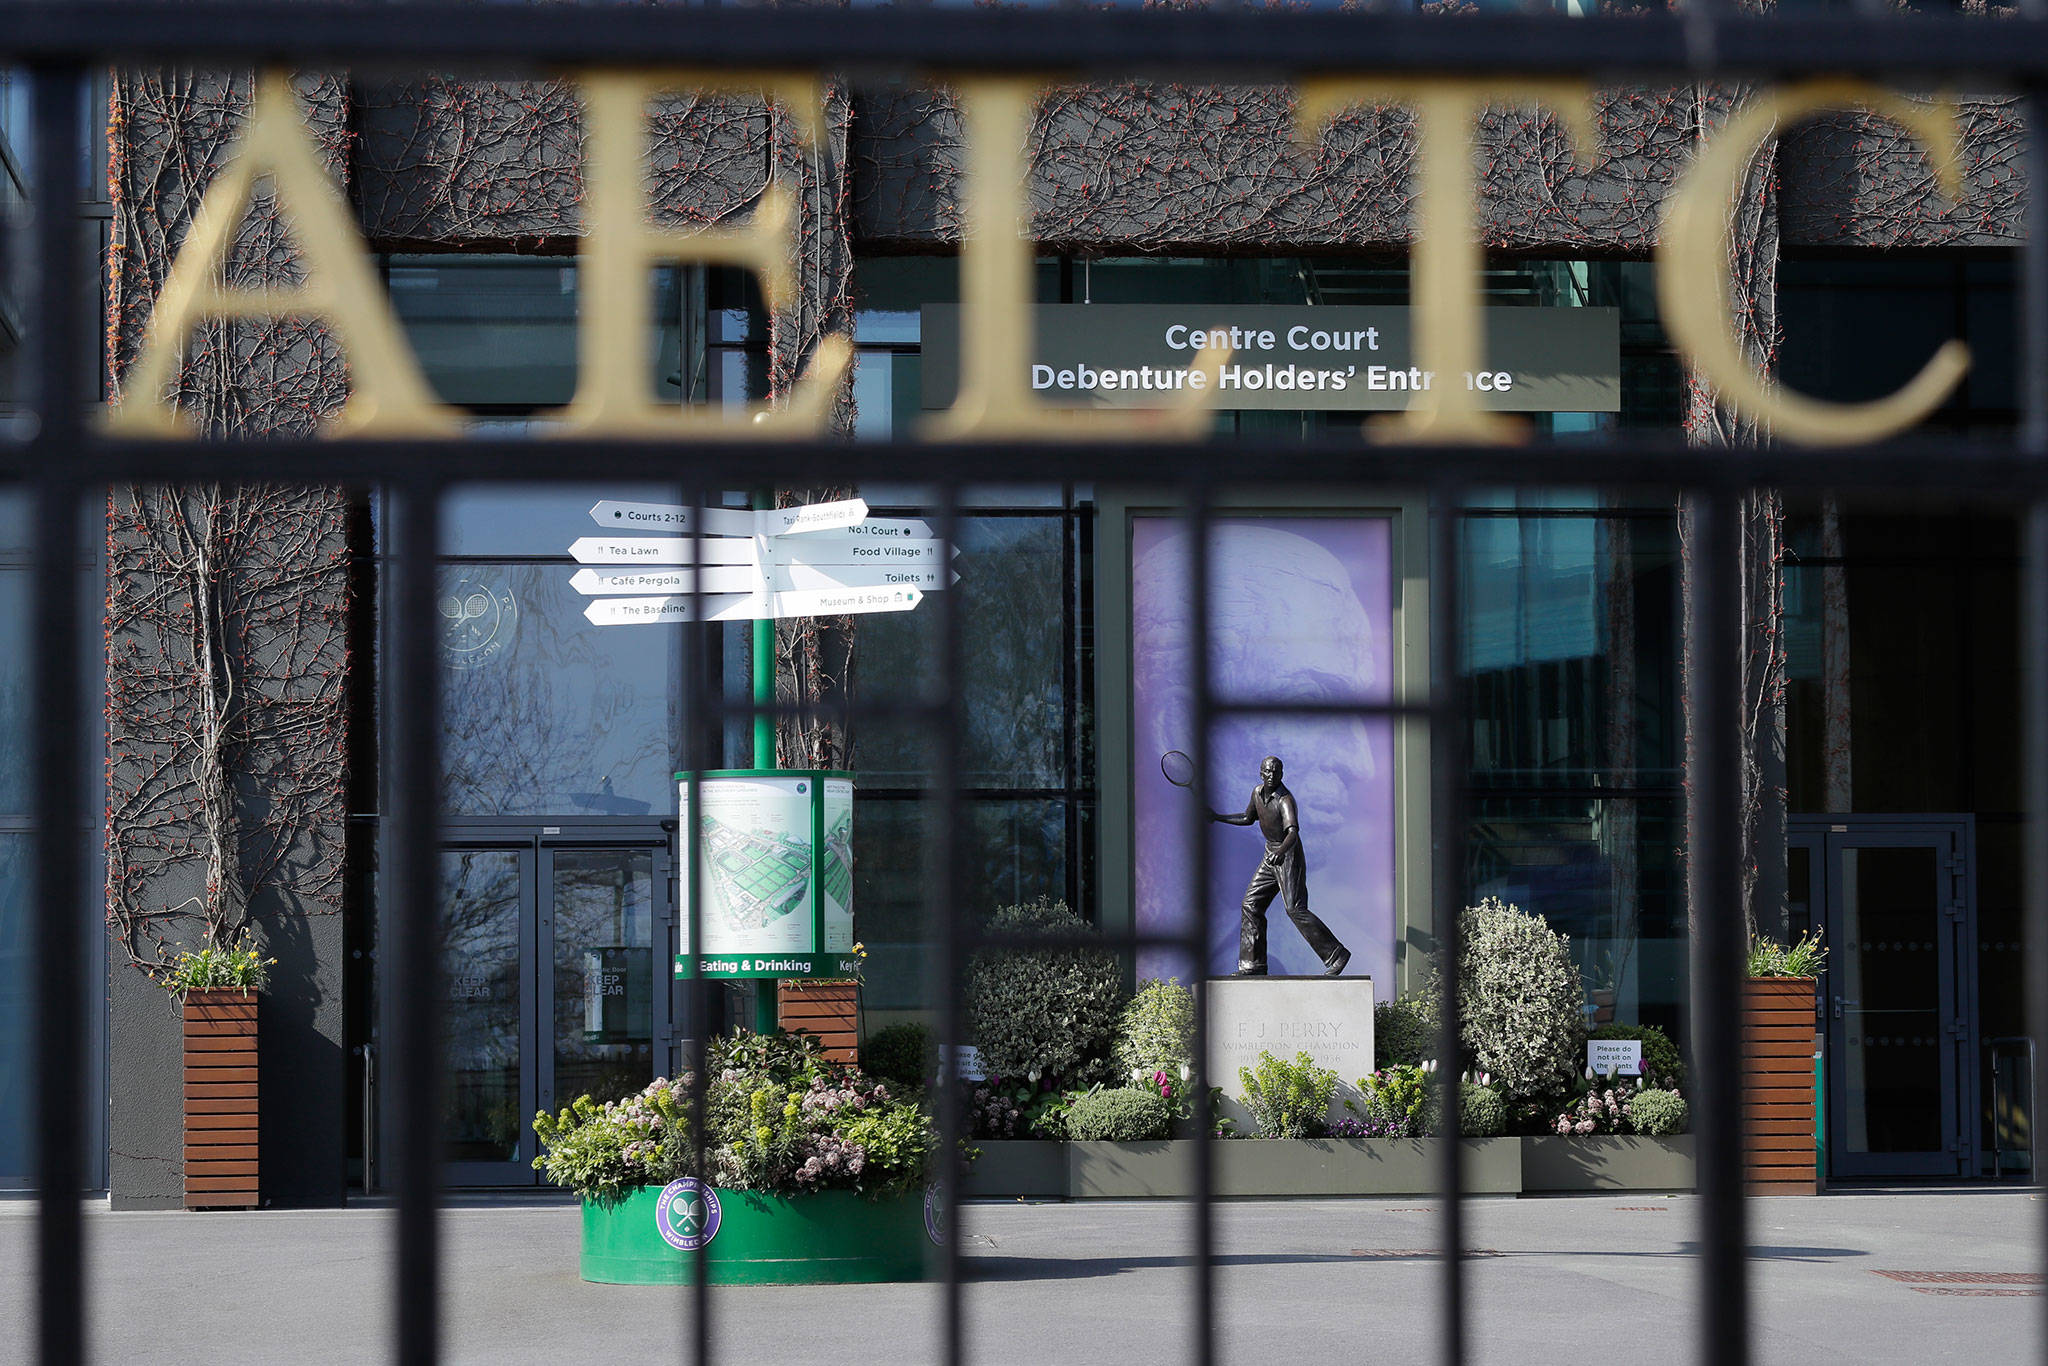 One of the main public entrances to All England Lawn Tennis and Croquet club in London where the Wimbledown tournament is held. (AP Photo/Kirsty Wigglesworth)